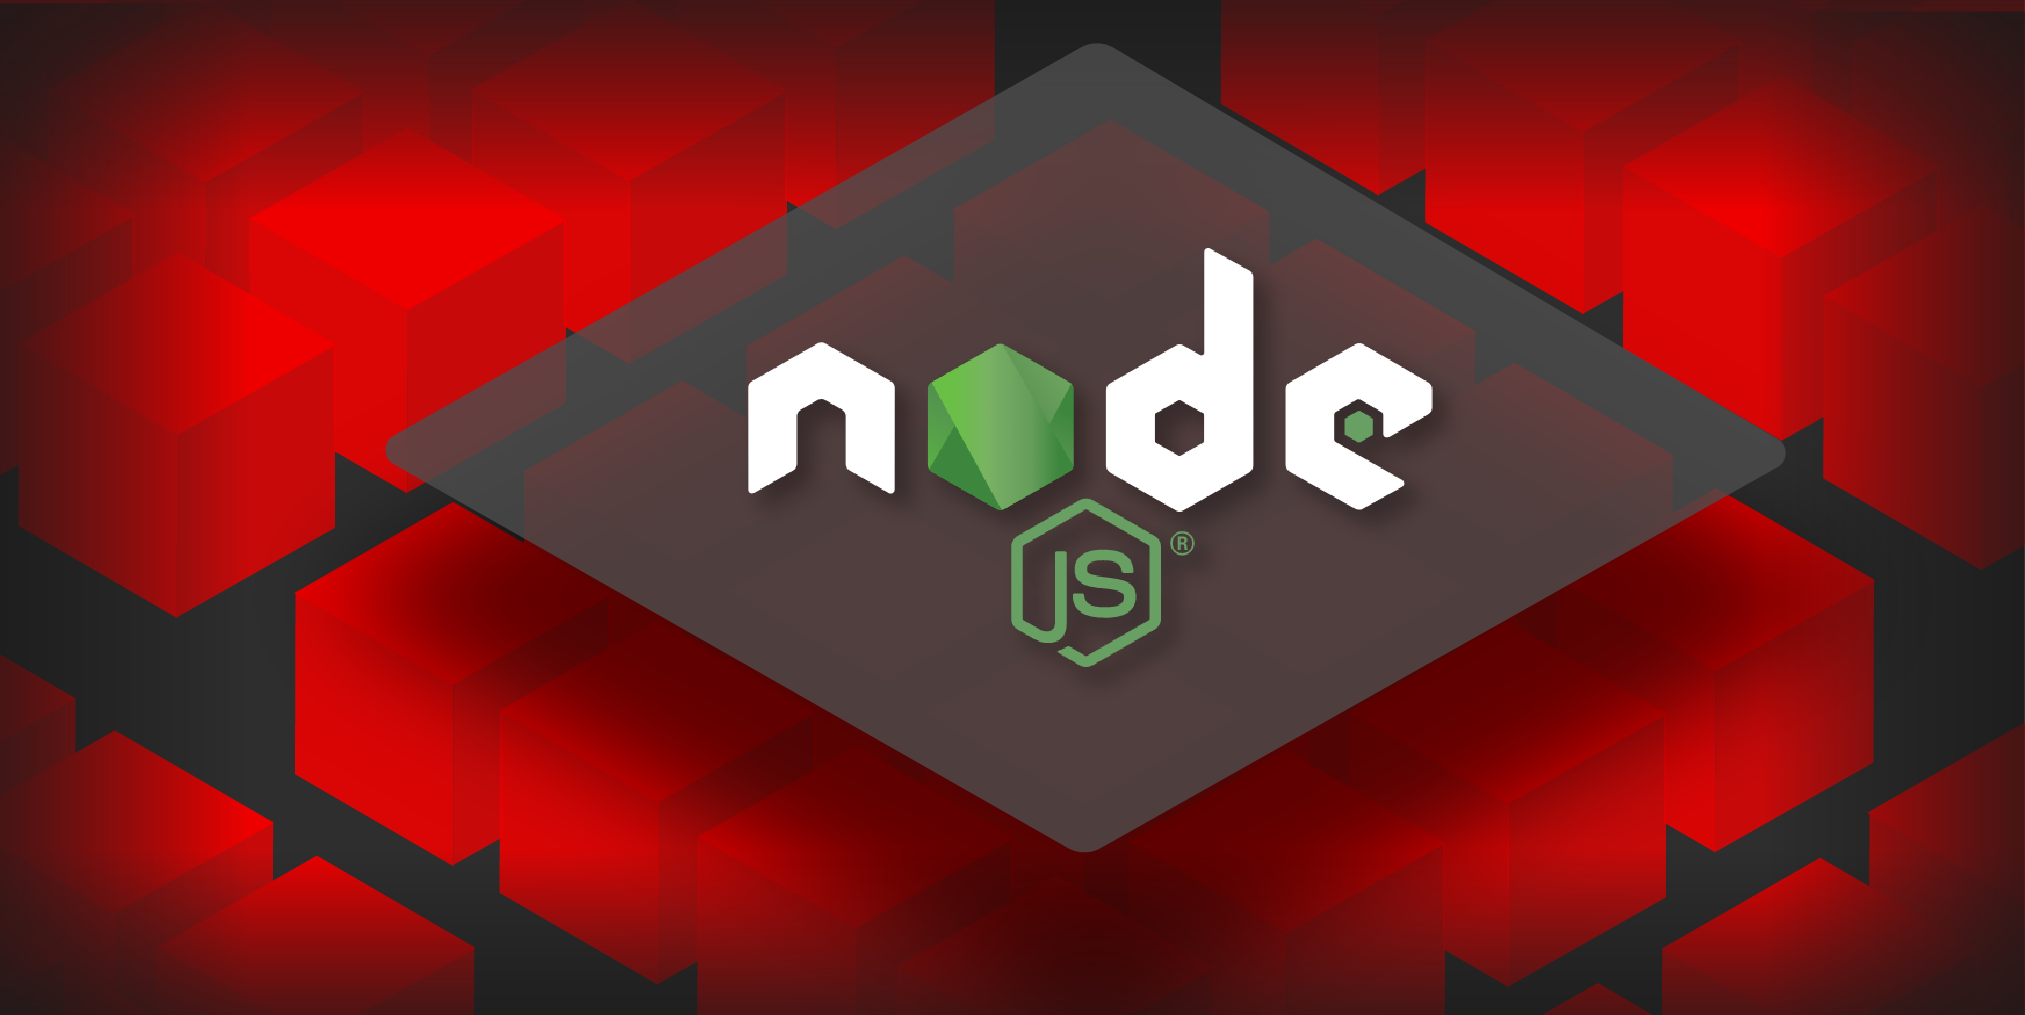 Get started with Node.js 14 on Red Hat OpenShift